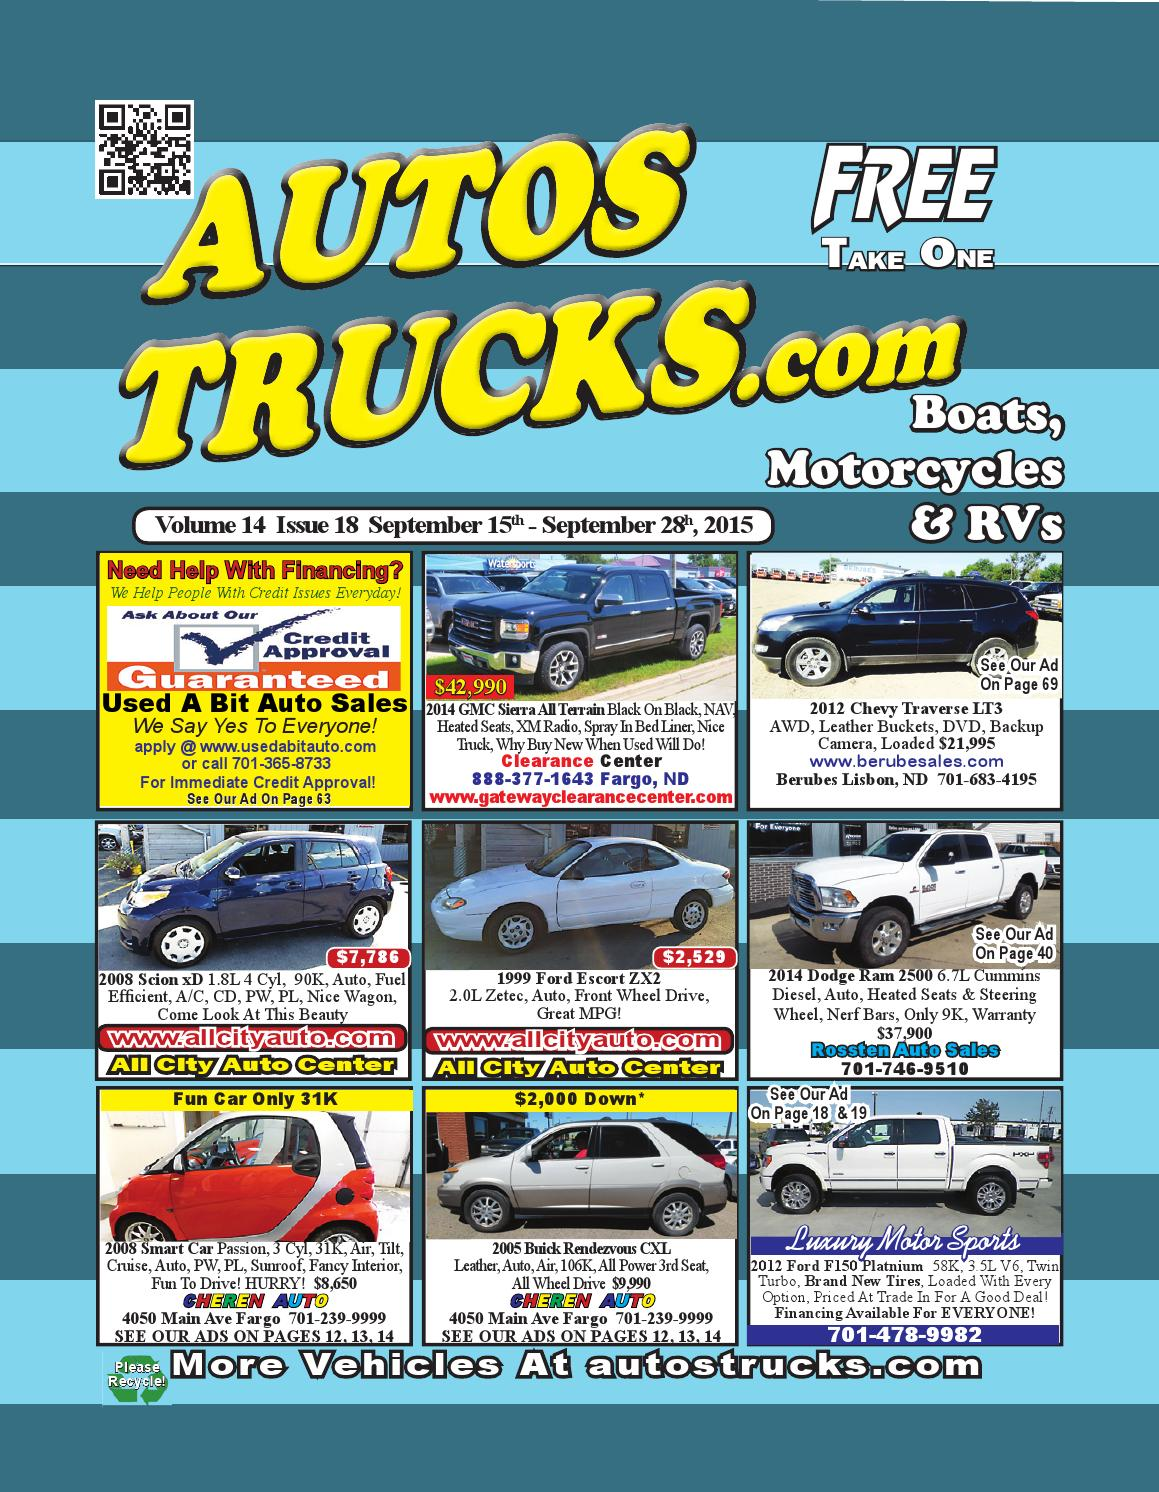 Autos Trucks 14 18 By Issuu Astrostart Car Alarms Remote Starters Vehicle 2016 Release Date